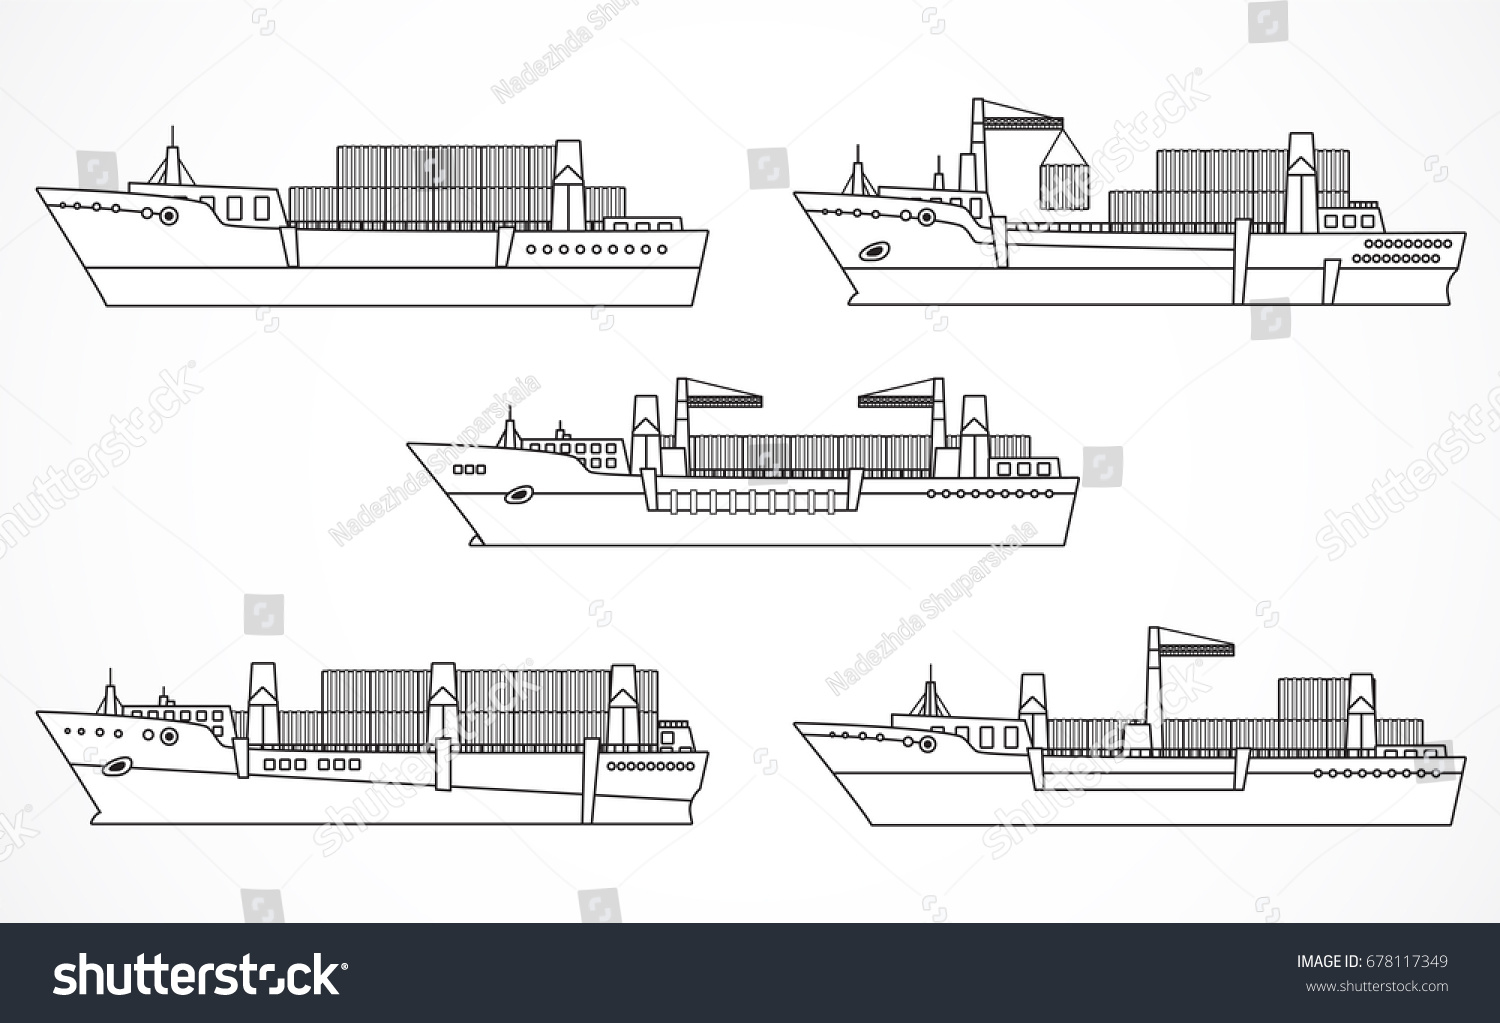 hight resolution of vector set of dry cargo ships container ships black contours please see other